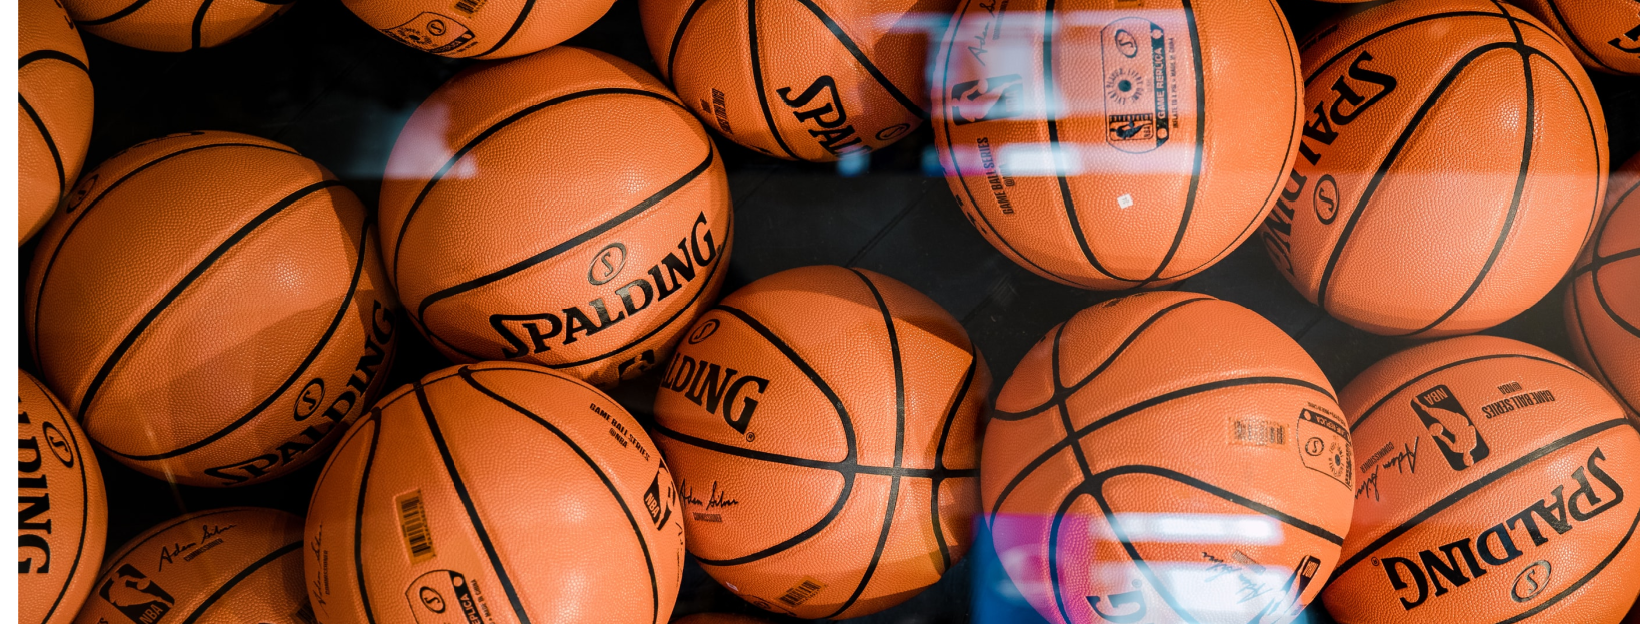 basketballs in a pile